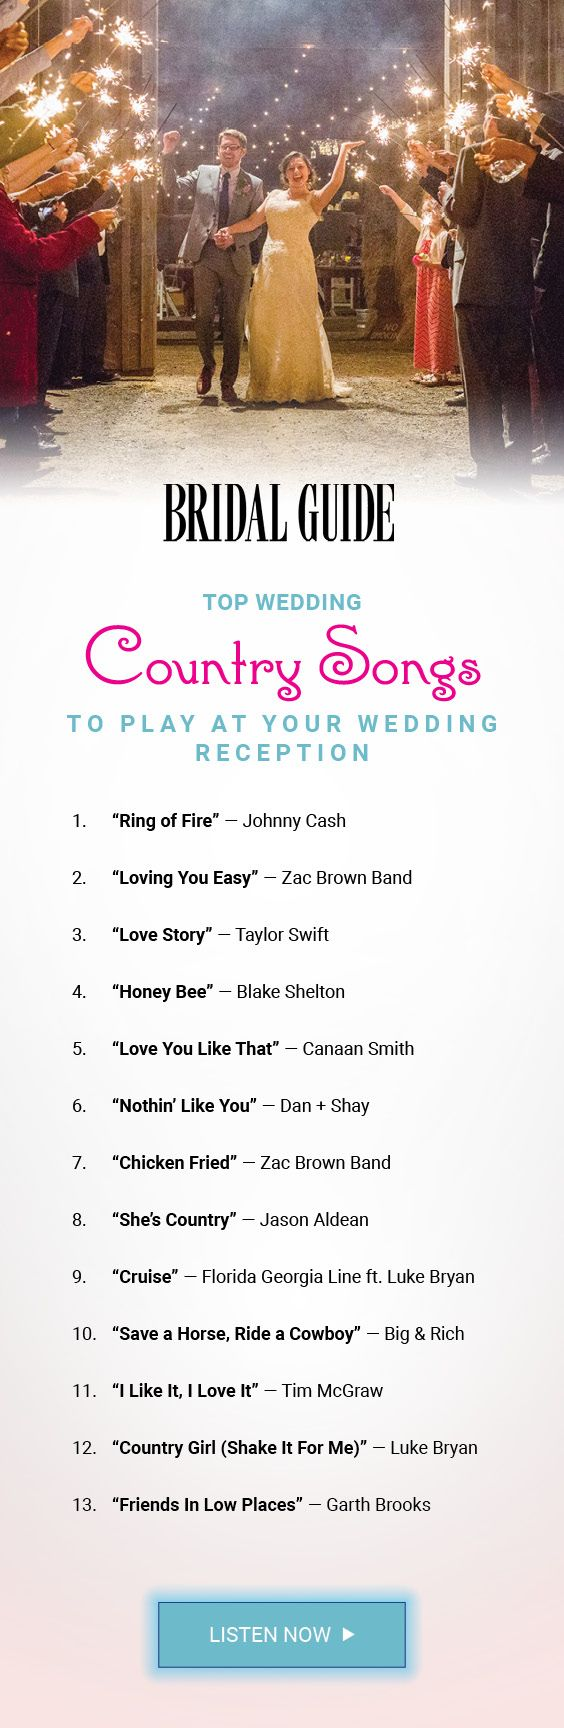 Top 60 country songs to play at your wedding top country hits get the party started at your wedding reception with these top country hits junglespirit Images